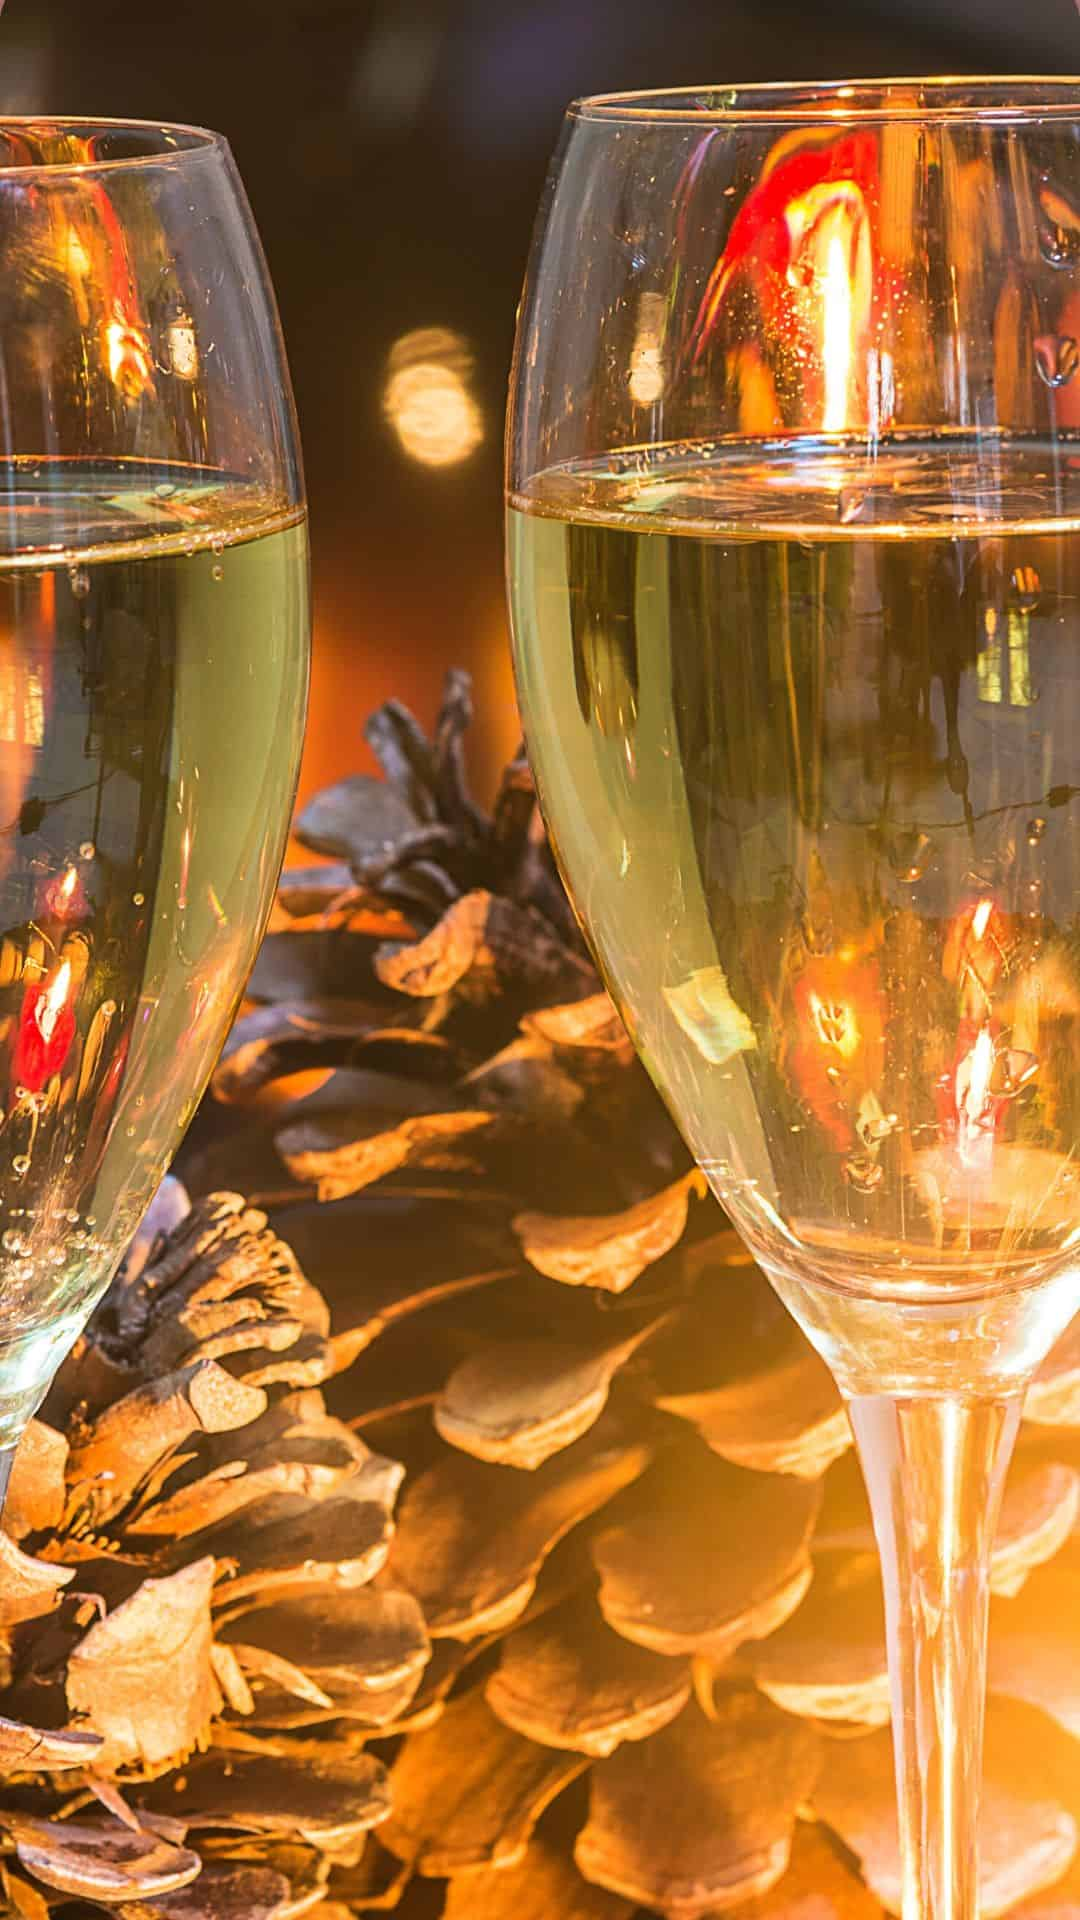 Cozy Christmas Backgrounds For iPhone Wallpaper Christmas Champagne By The Fire